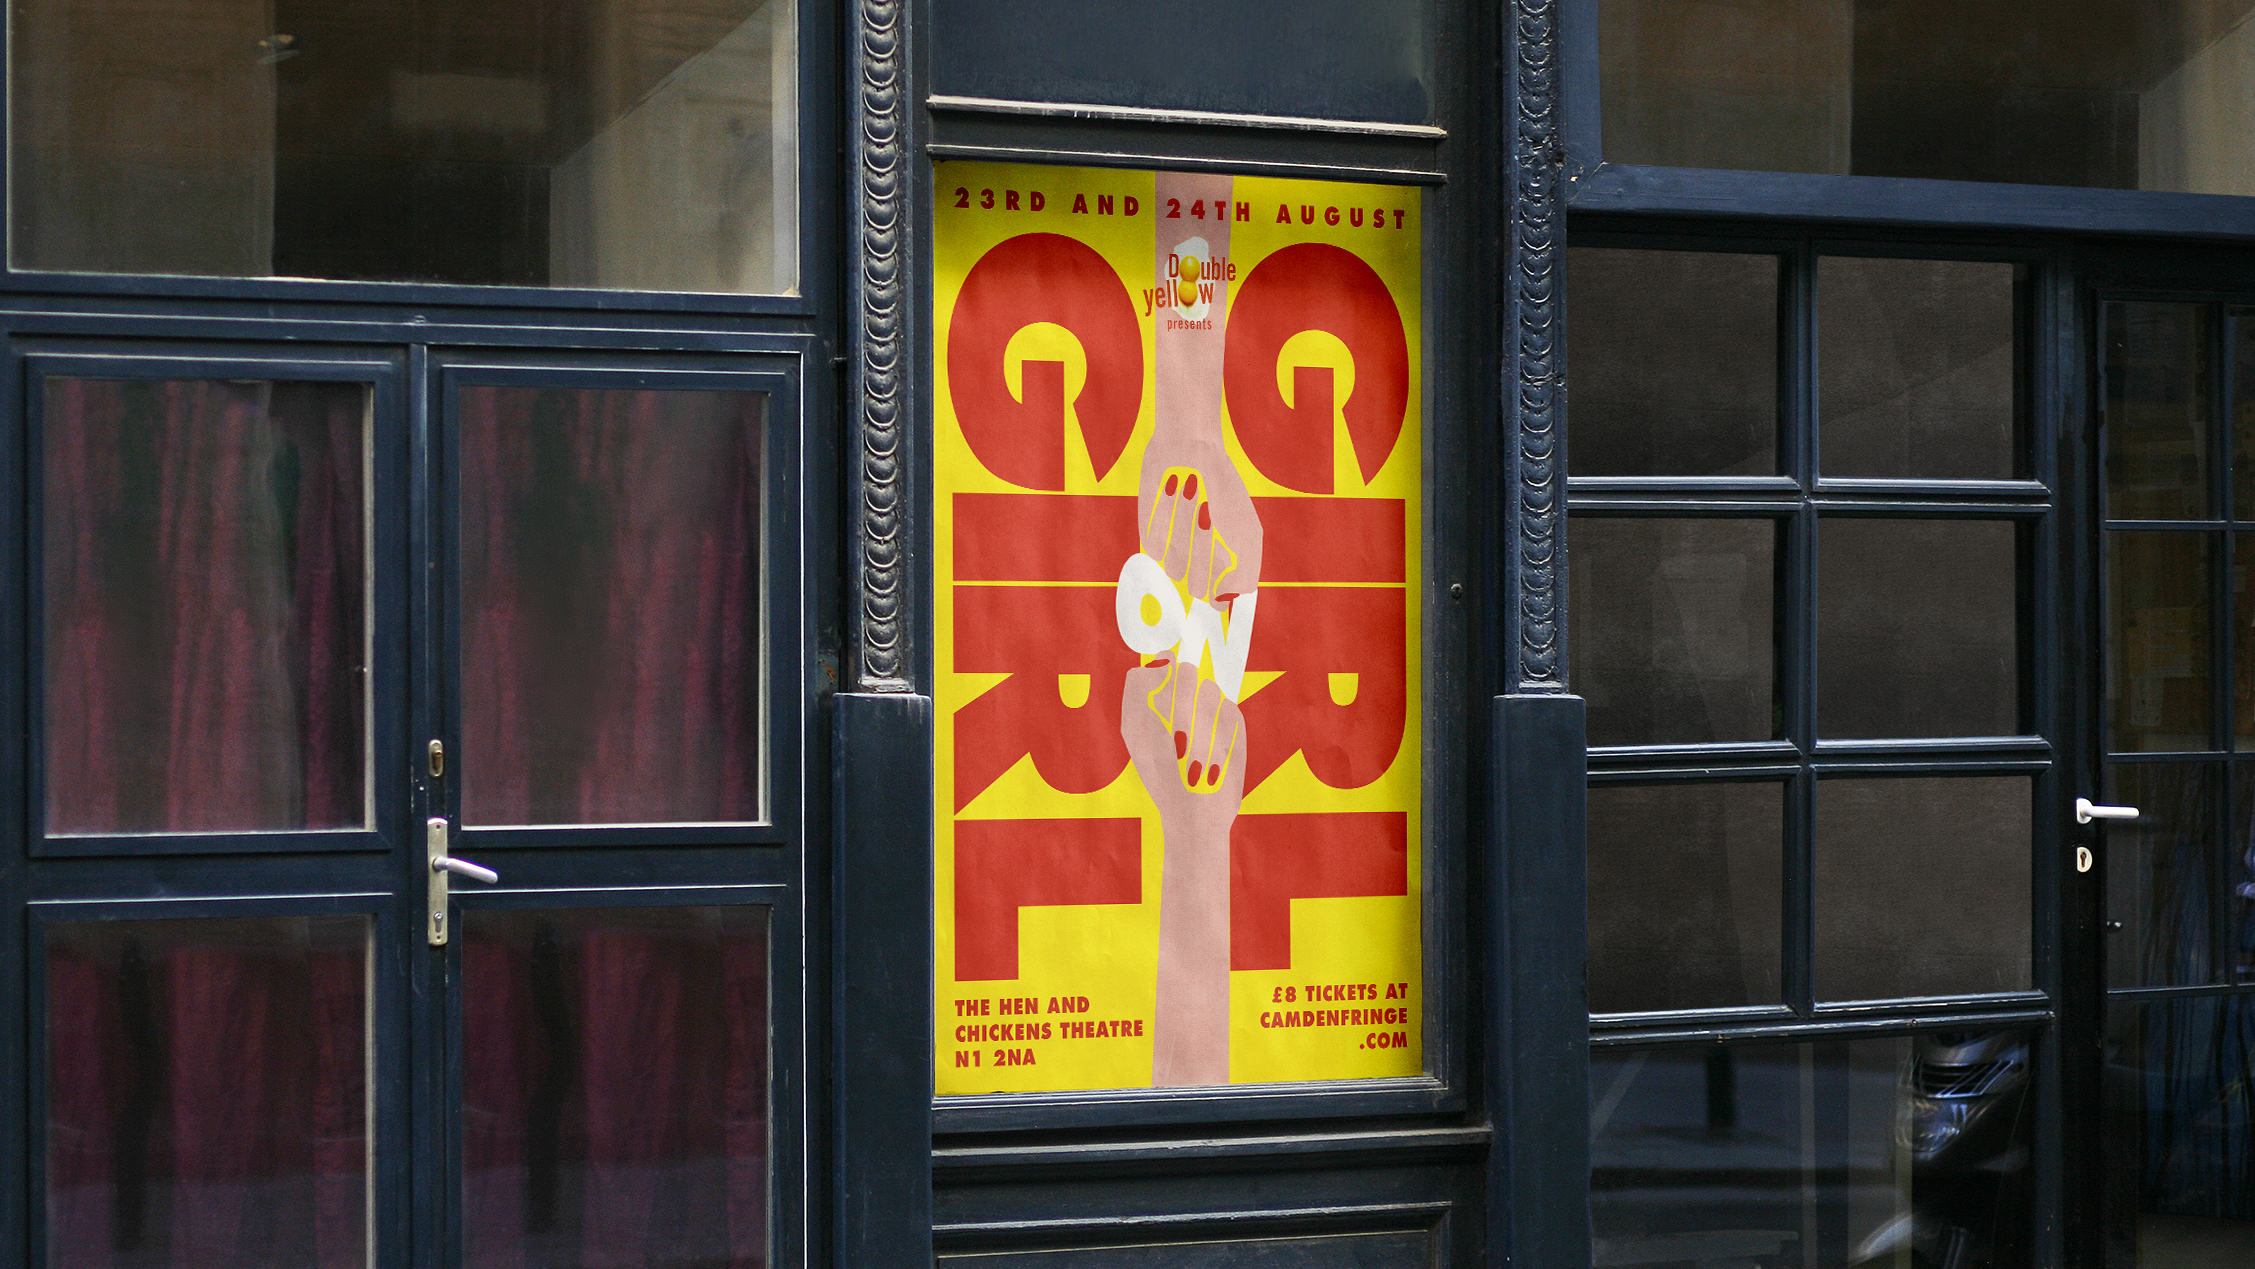 Poster for a show by Double Yellow about the internal divisions within feminism.